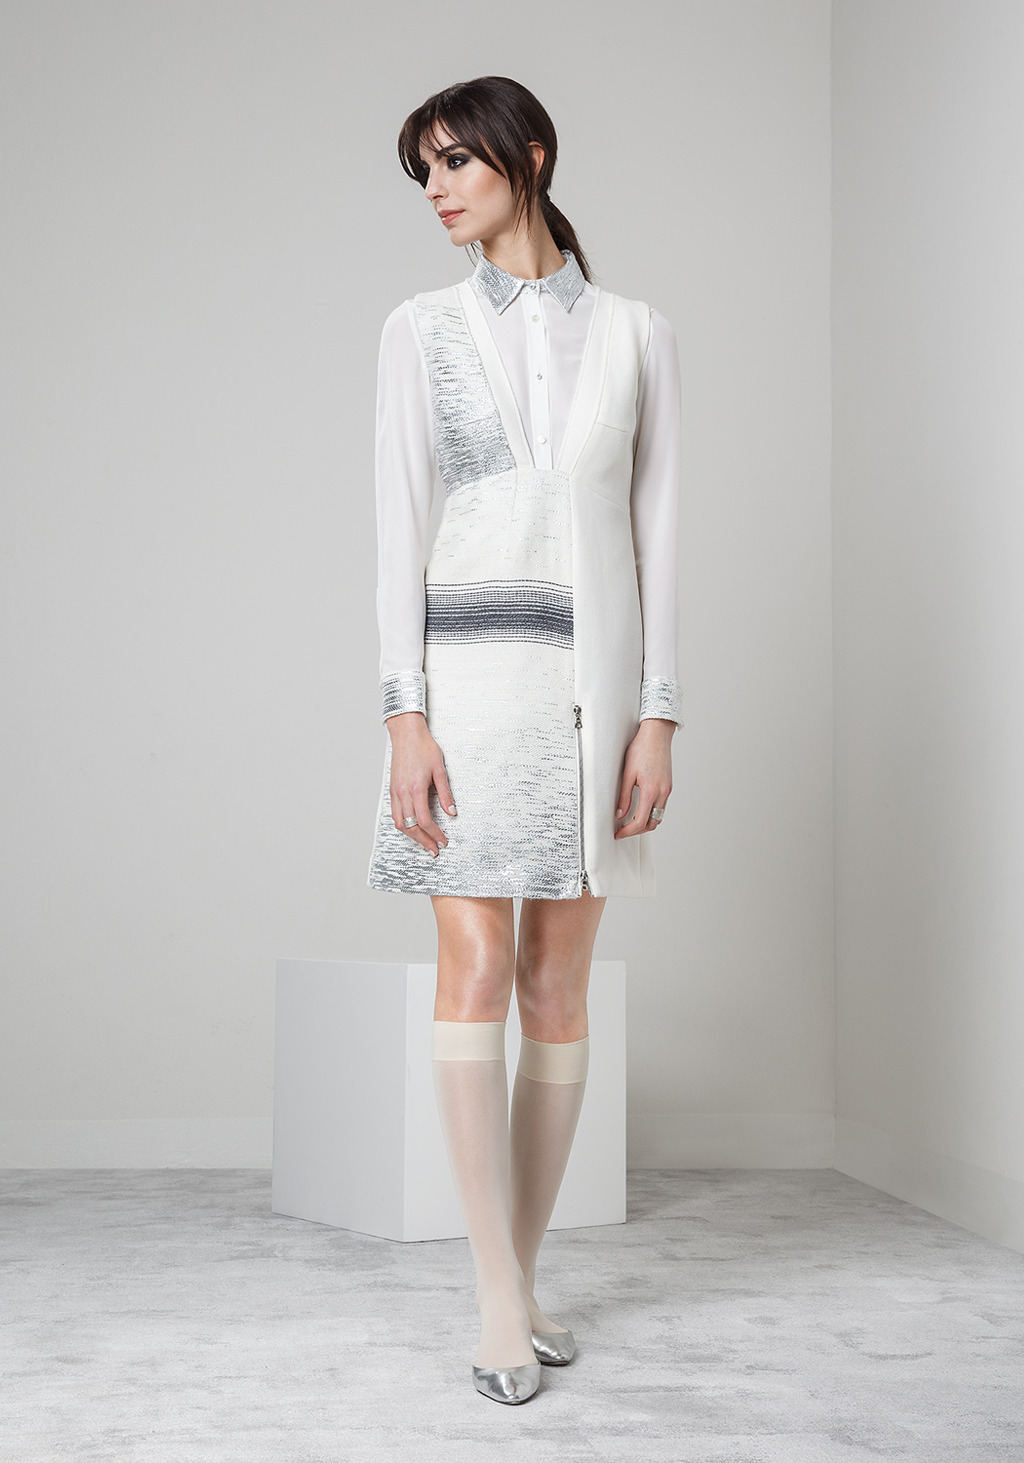 White wool crepe jacquard dress - white silk shirt with jacquard silver details